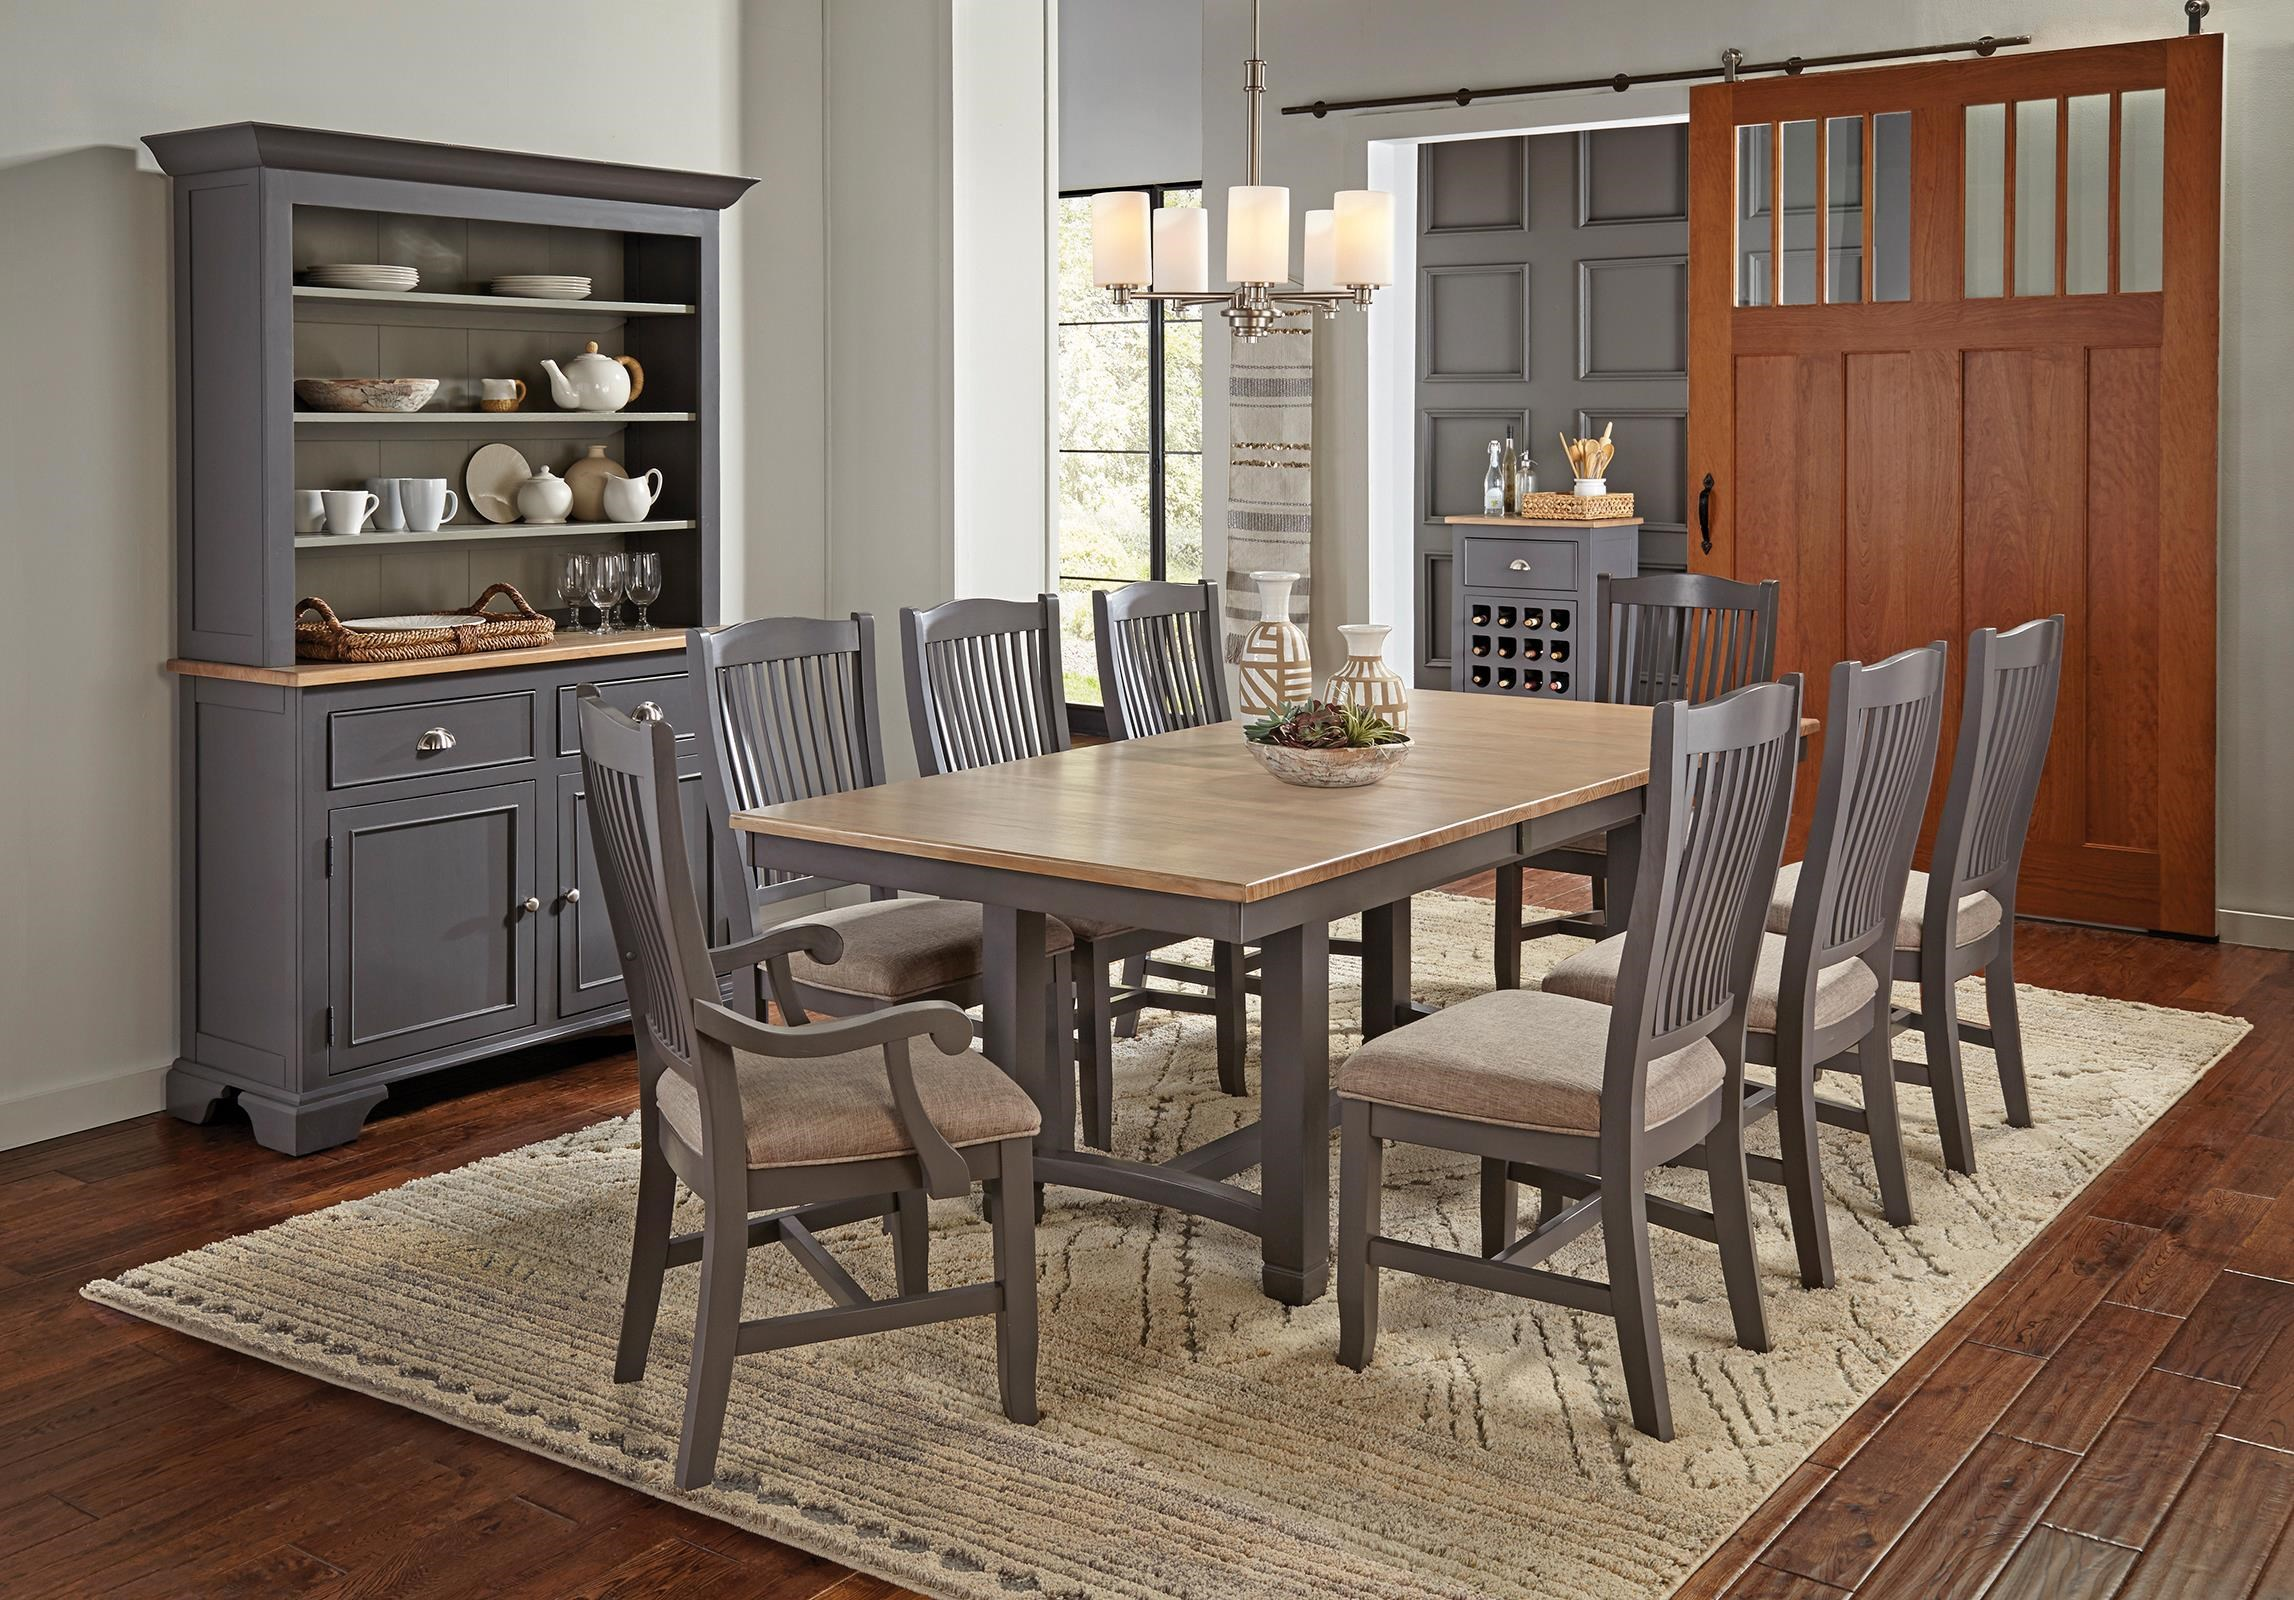 Port Townsend Trestle Table with 4 Chairs by AAmerica at Johnny Janosik